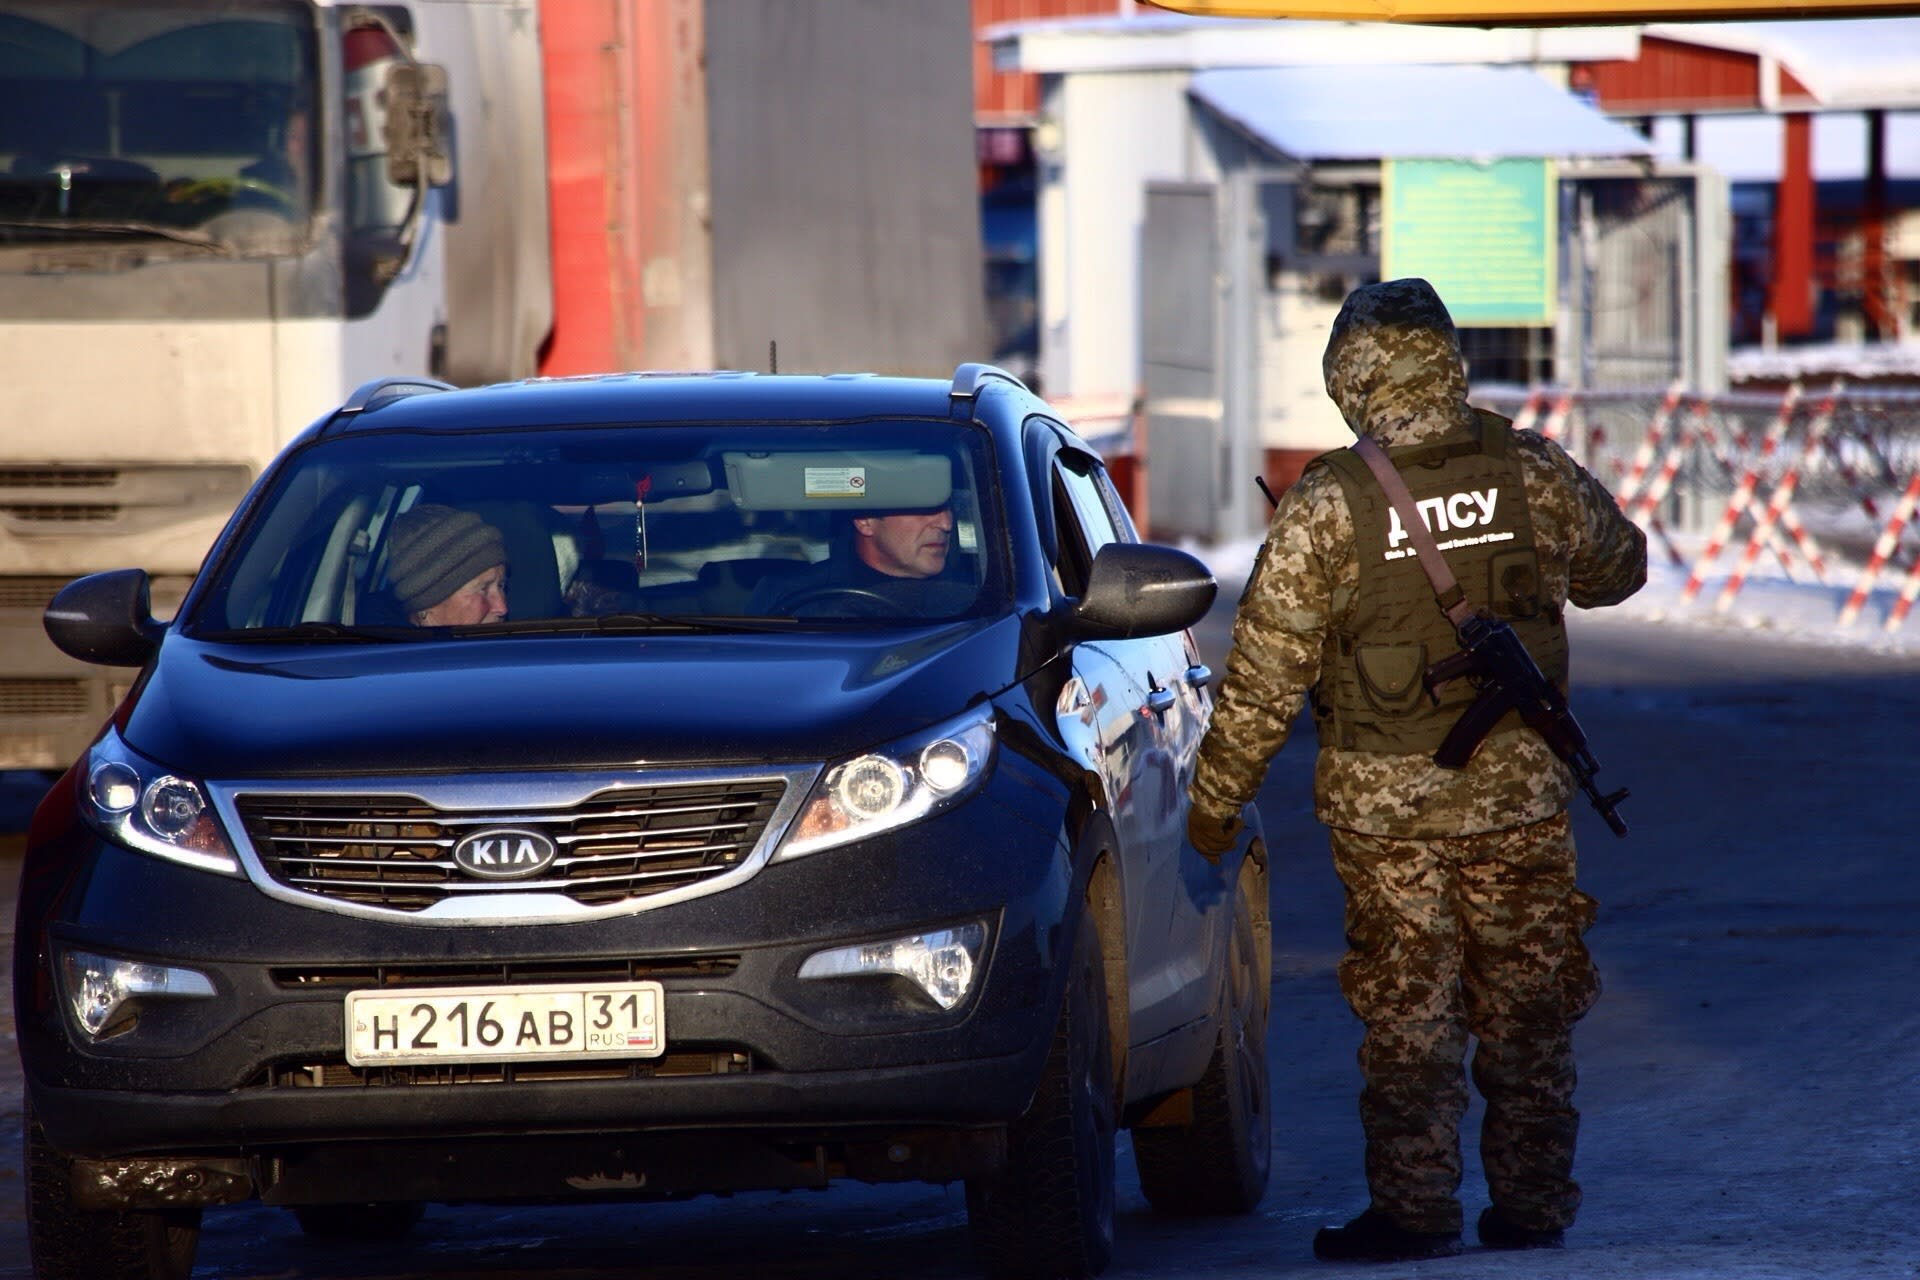 A Ukrainian border guard speaks to a driver of a car from Russia at the checkpoint at the border with Russia in Hoptivka, Ukraine, Friday, Nov. 30, 2018. Ukrainian officials announced earlier on Friday that all Russian men aged between 16 and 60 will be barred from entering Ukraine for the duration of the 30-day-long martial law. (AP Photo/Pavlo Pakhomenko)